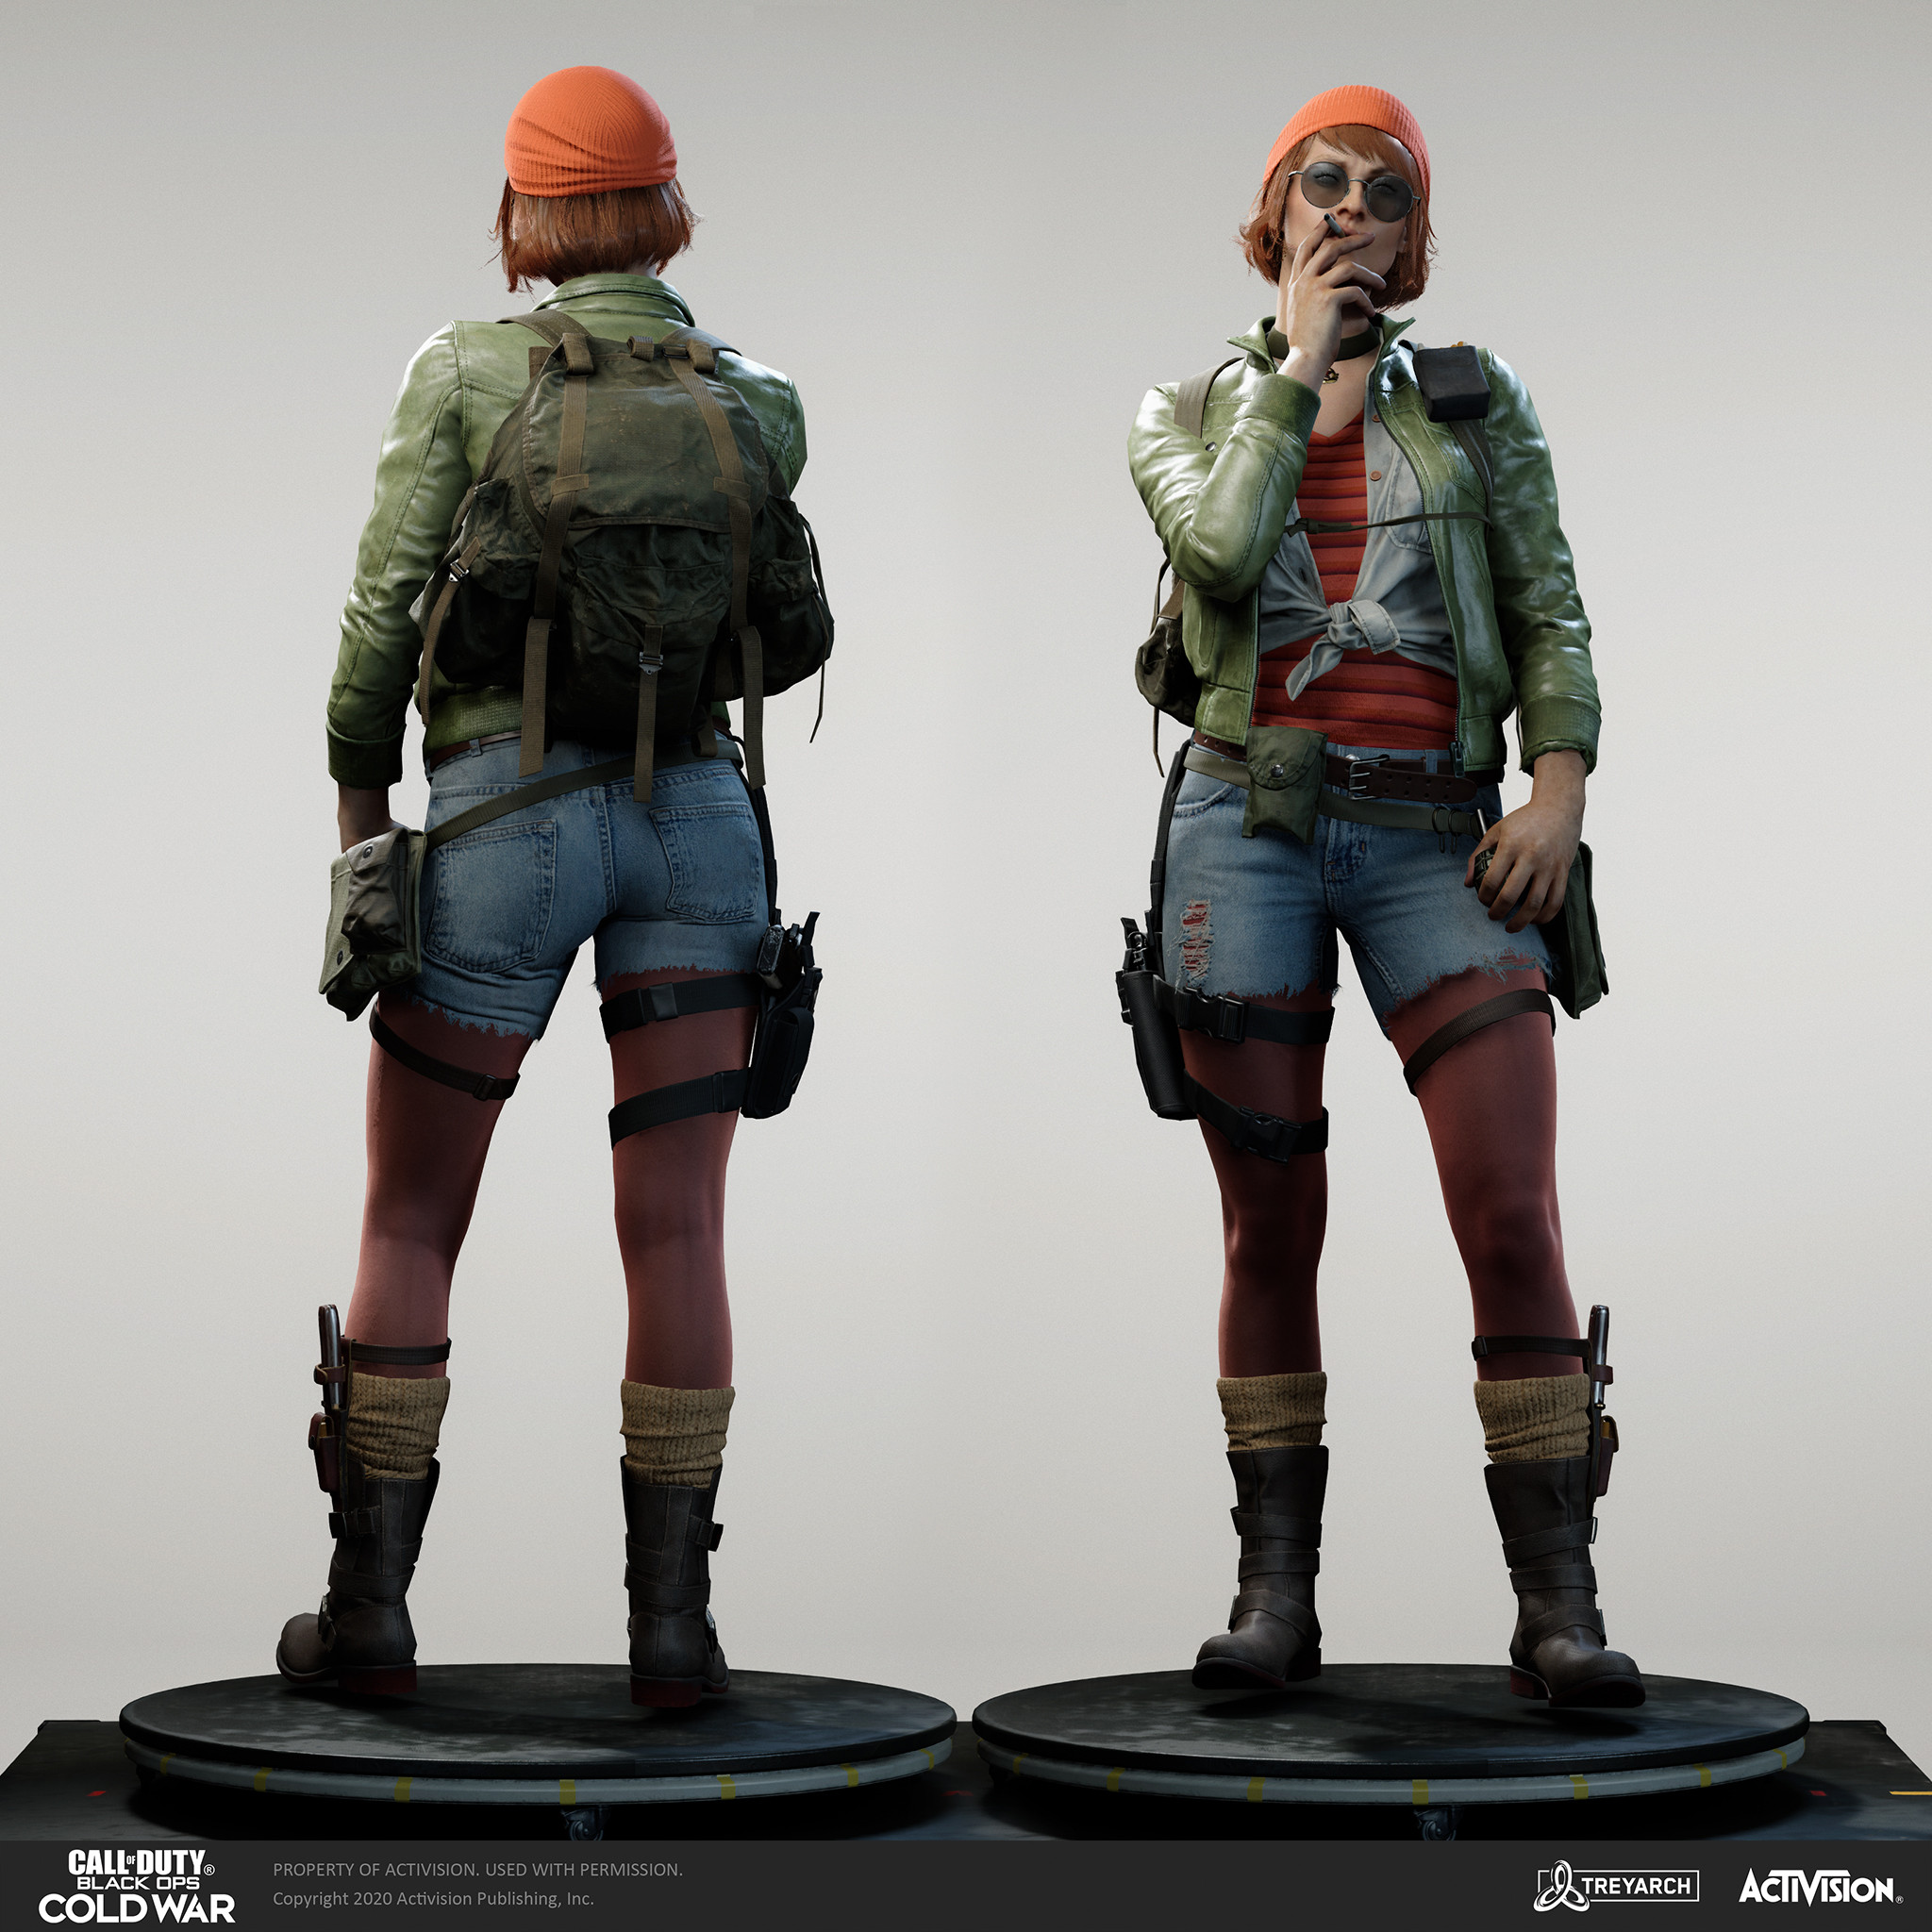 Skin for Yirina Portnova - Artist.  I was responsible for the design, game mesh assembly, and textures/materials. Individual models/bakes used on the character were created by the Treyarch, SHG, Raven, and OS teams. Head and hair model by Wren Cromwell.